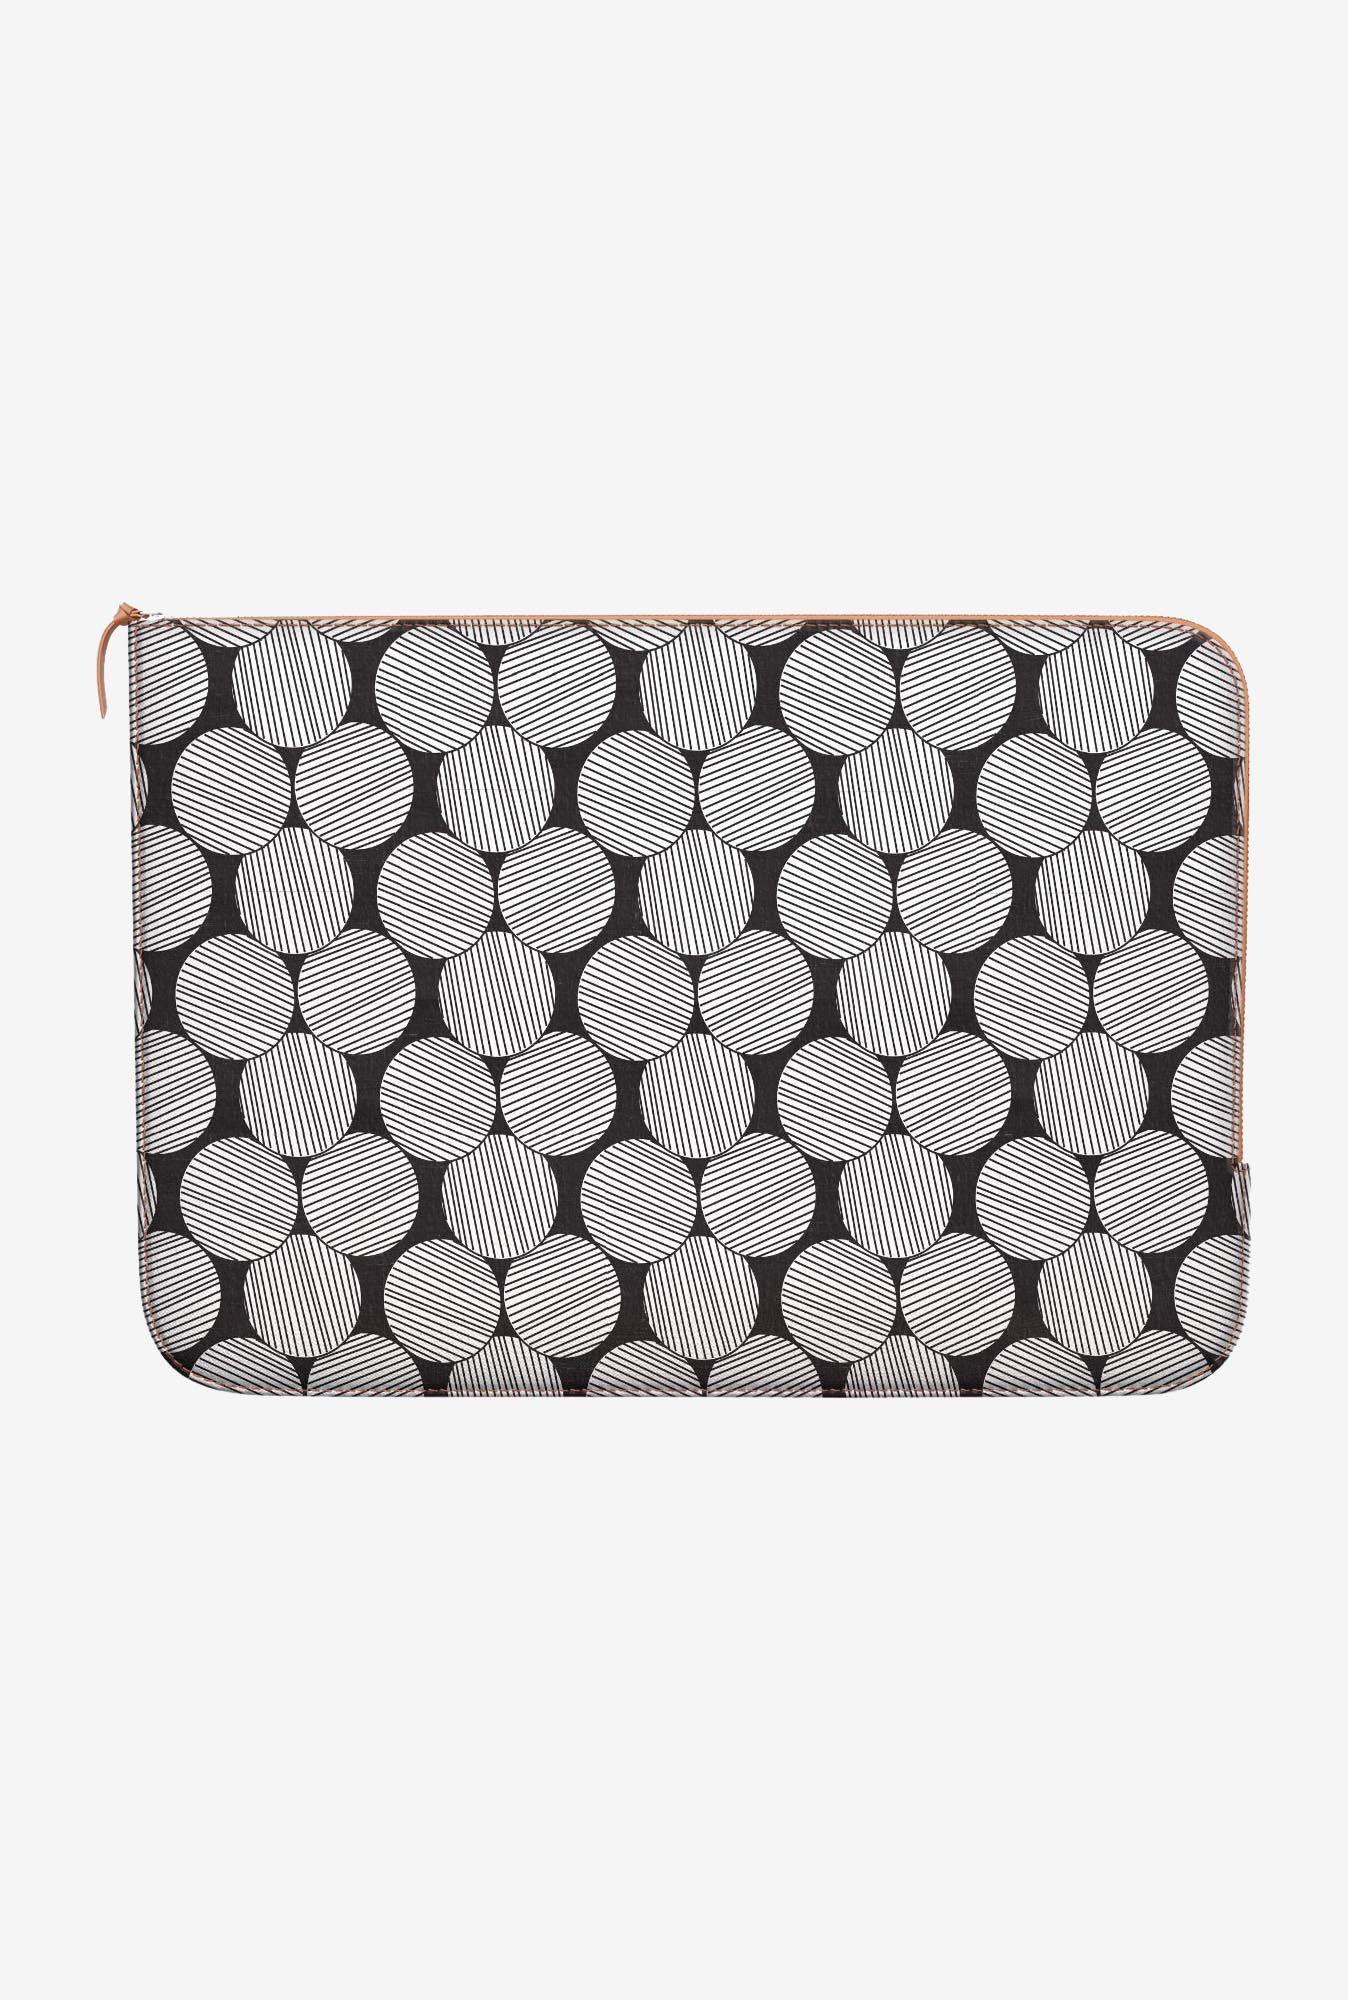 DailyObjects Lined Circles MacBook Air 13 Zippered Sleeve